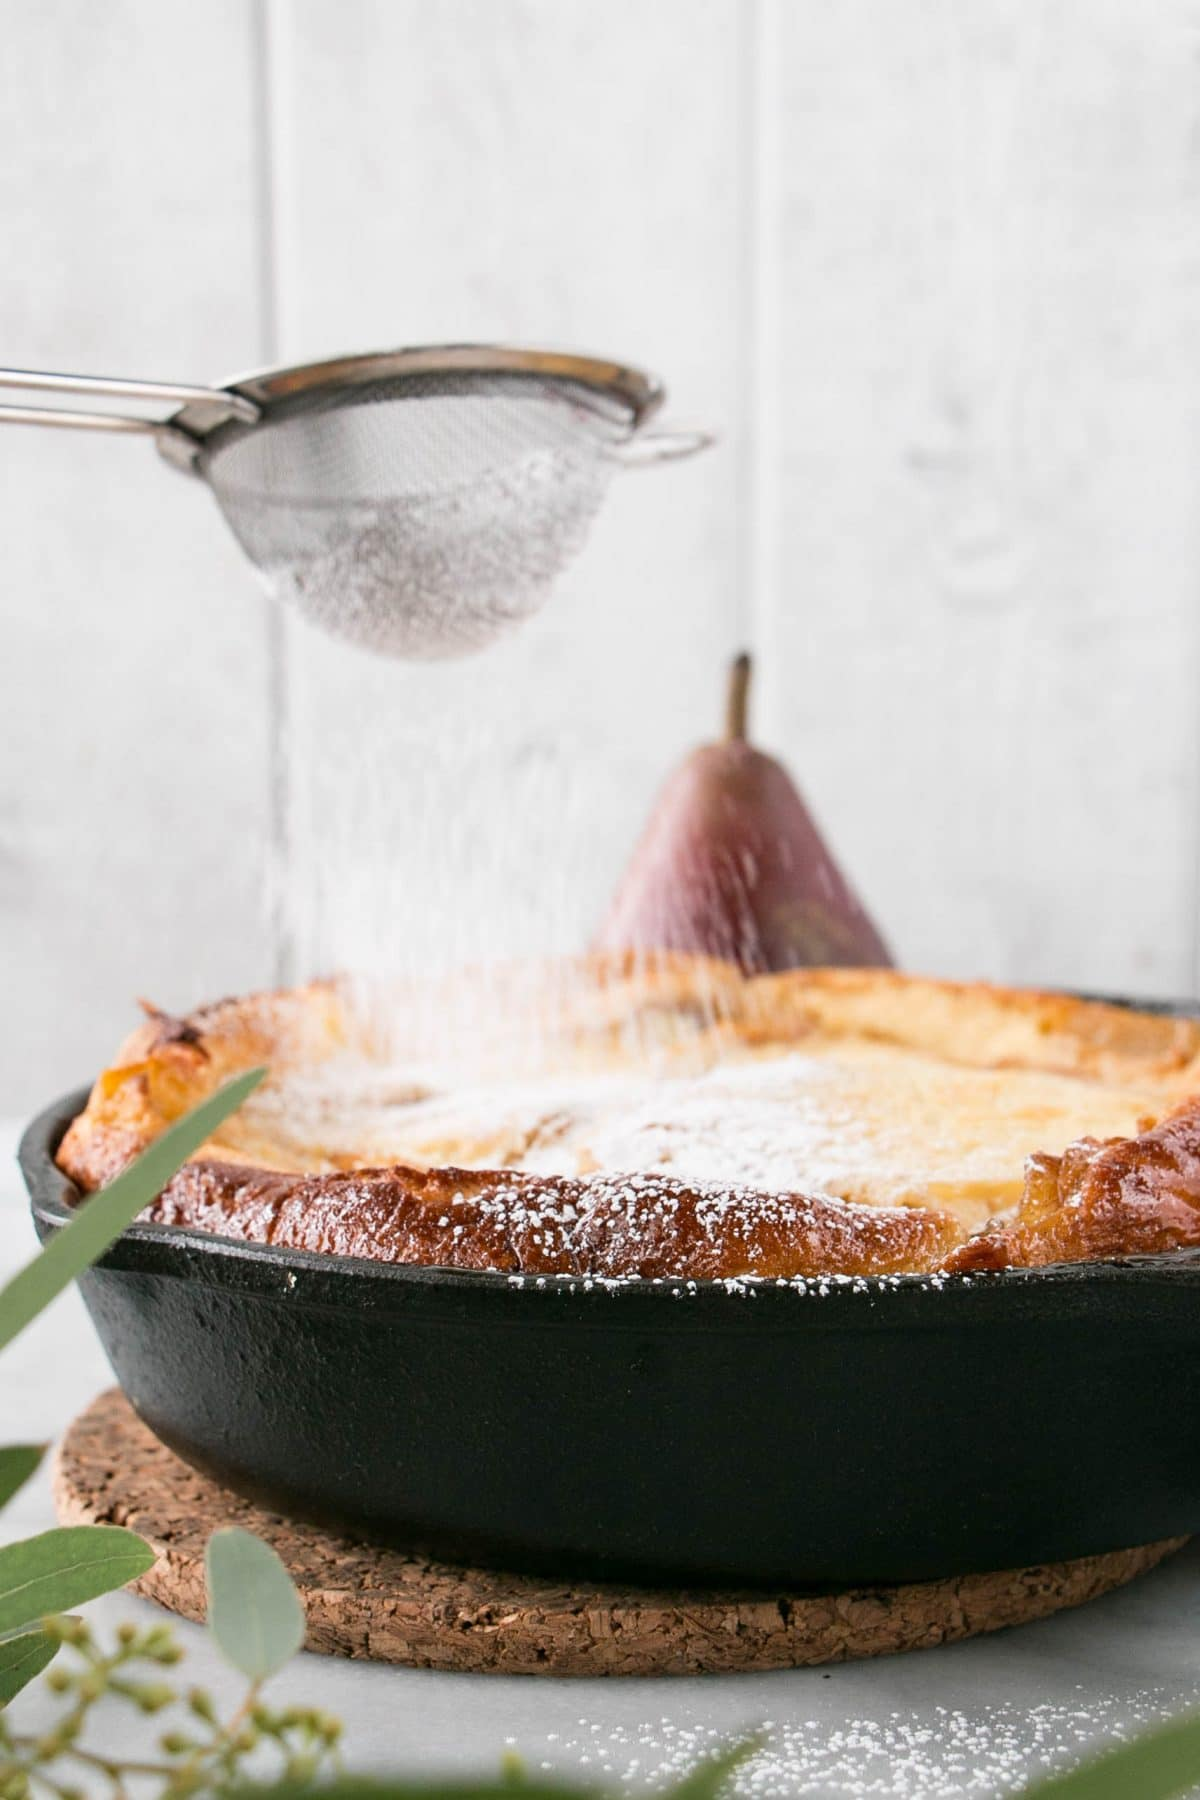 Icing sugar being sifted onto a Baby Dutch Pancake in a cast-iron skillet with a red pear in the background.